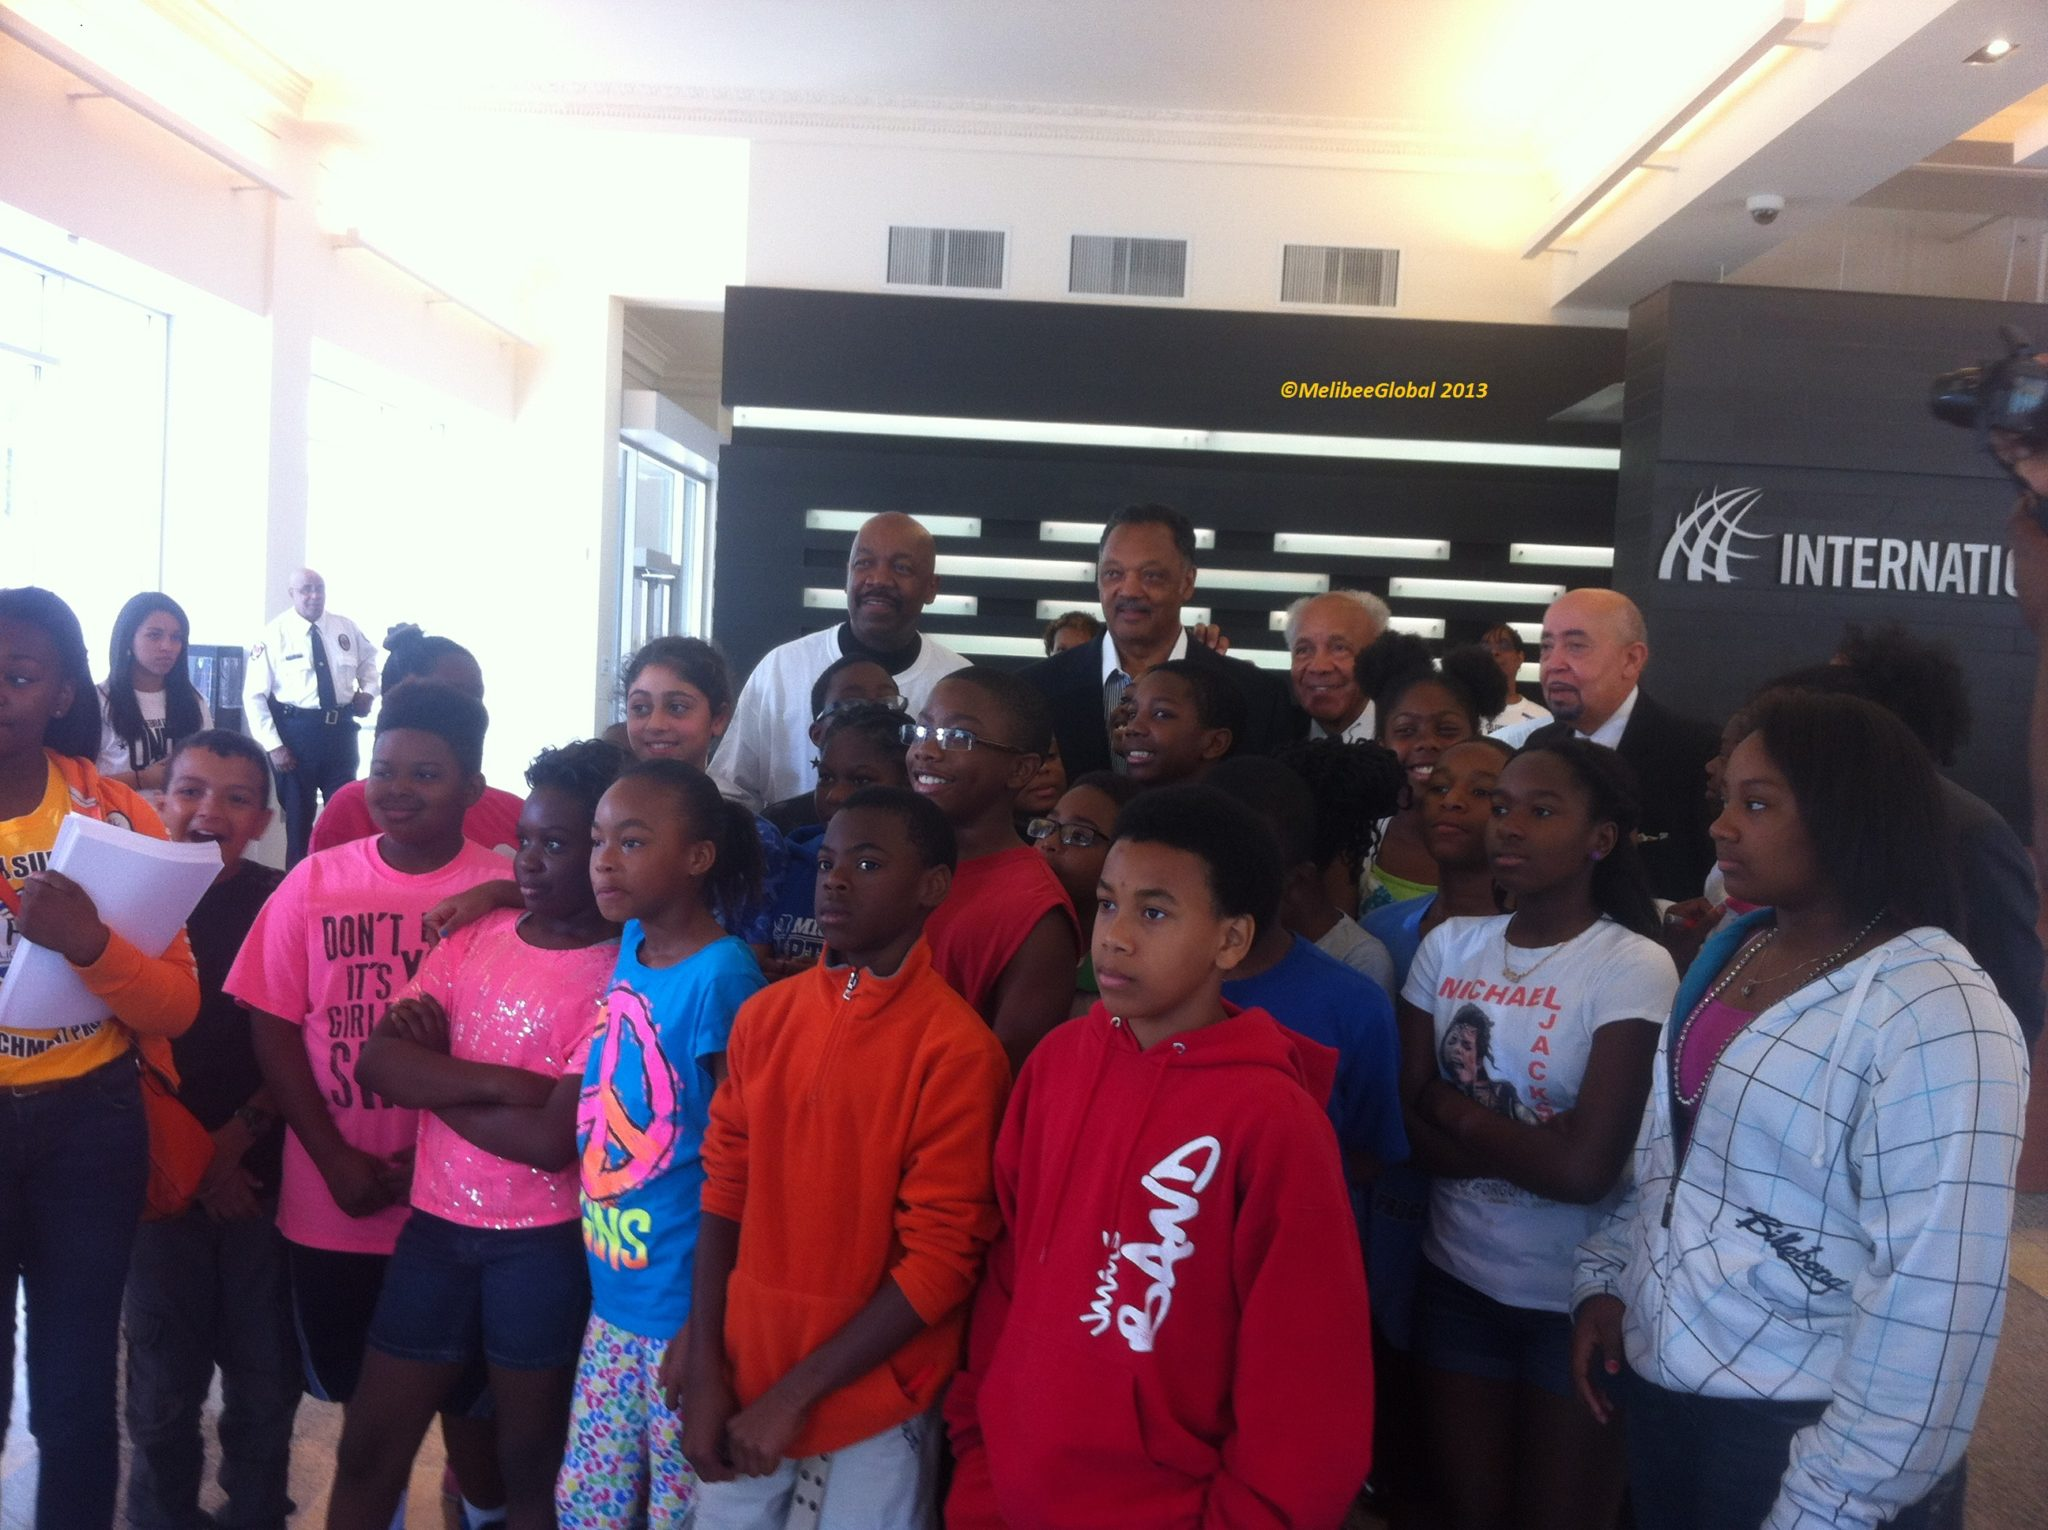 Reverend Jackson spoke with a group of students while the press encouraged a group photo.